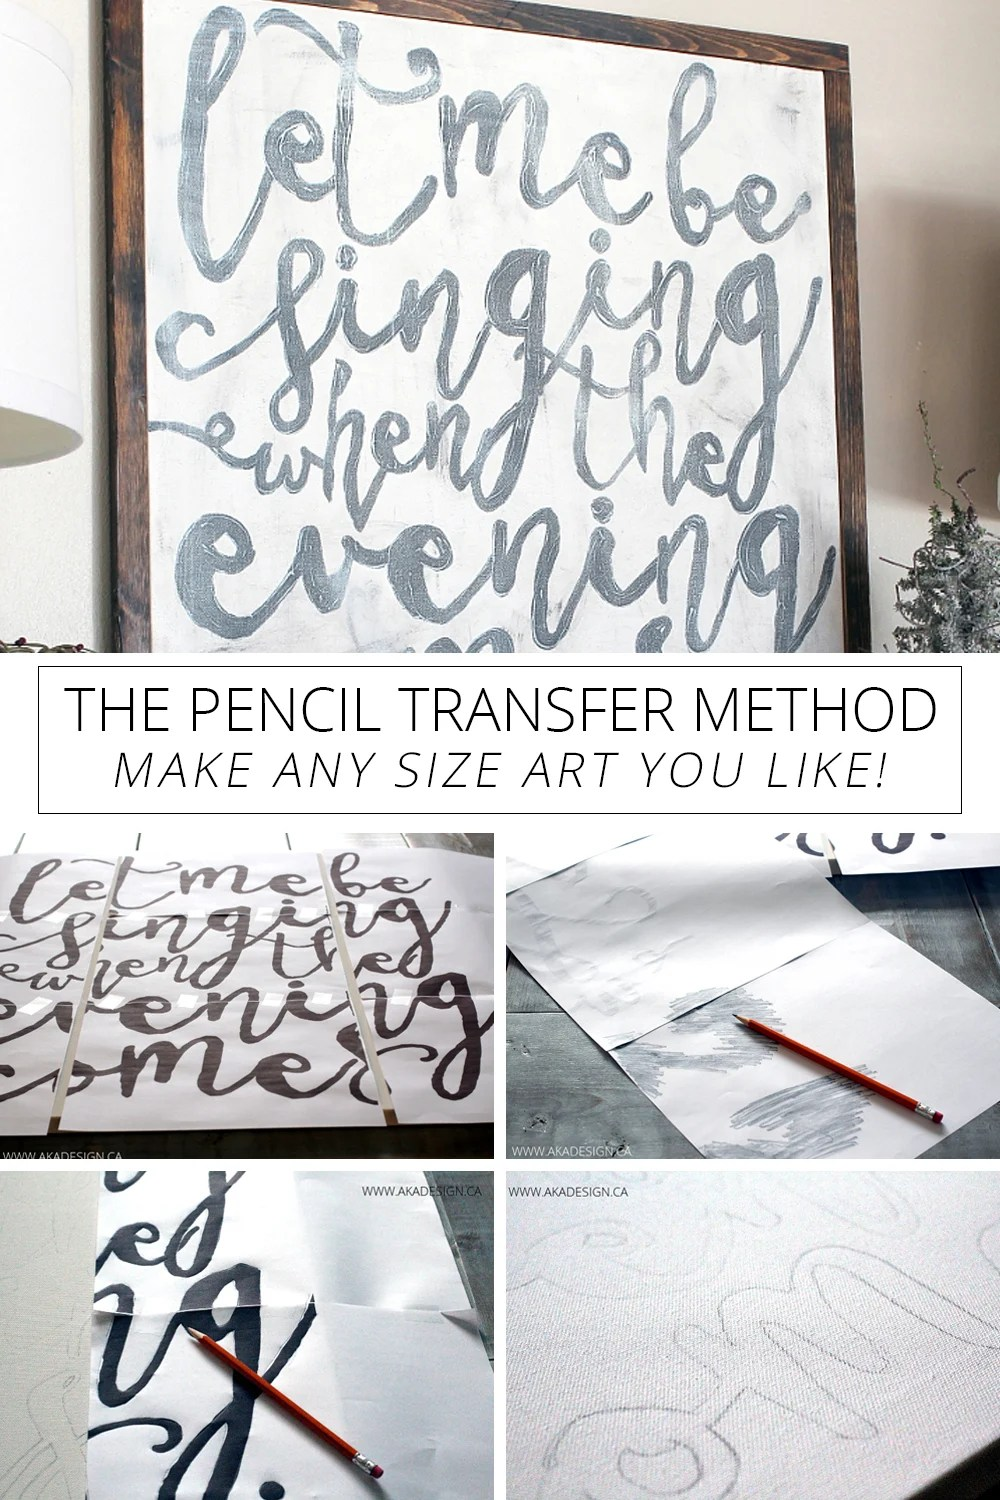 the pencil transfer method - make any size art you like